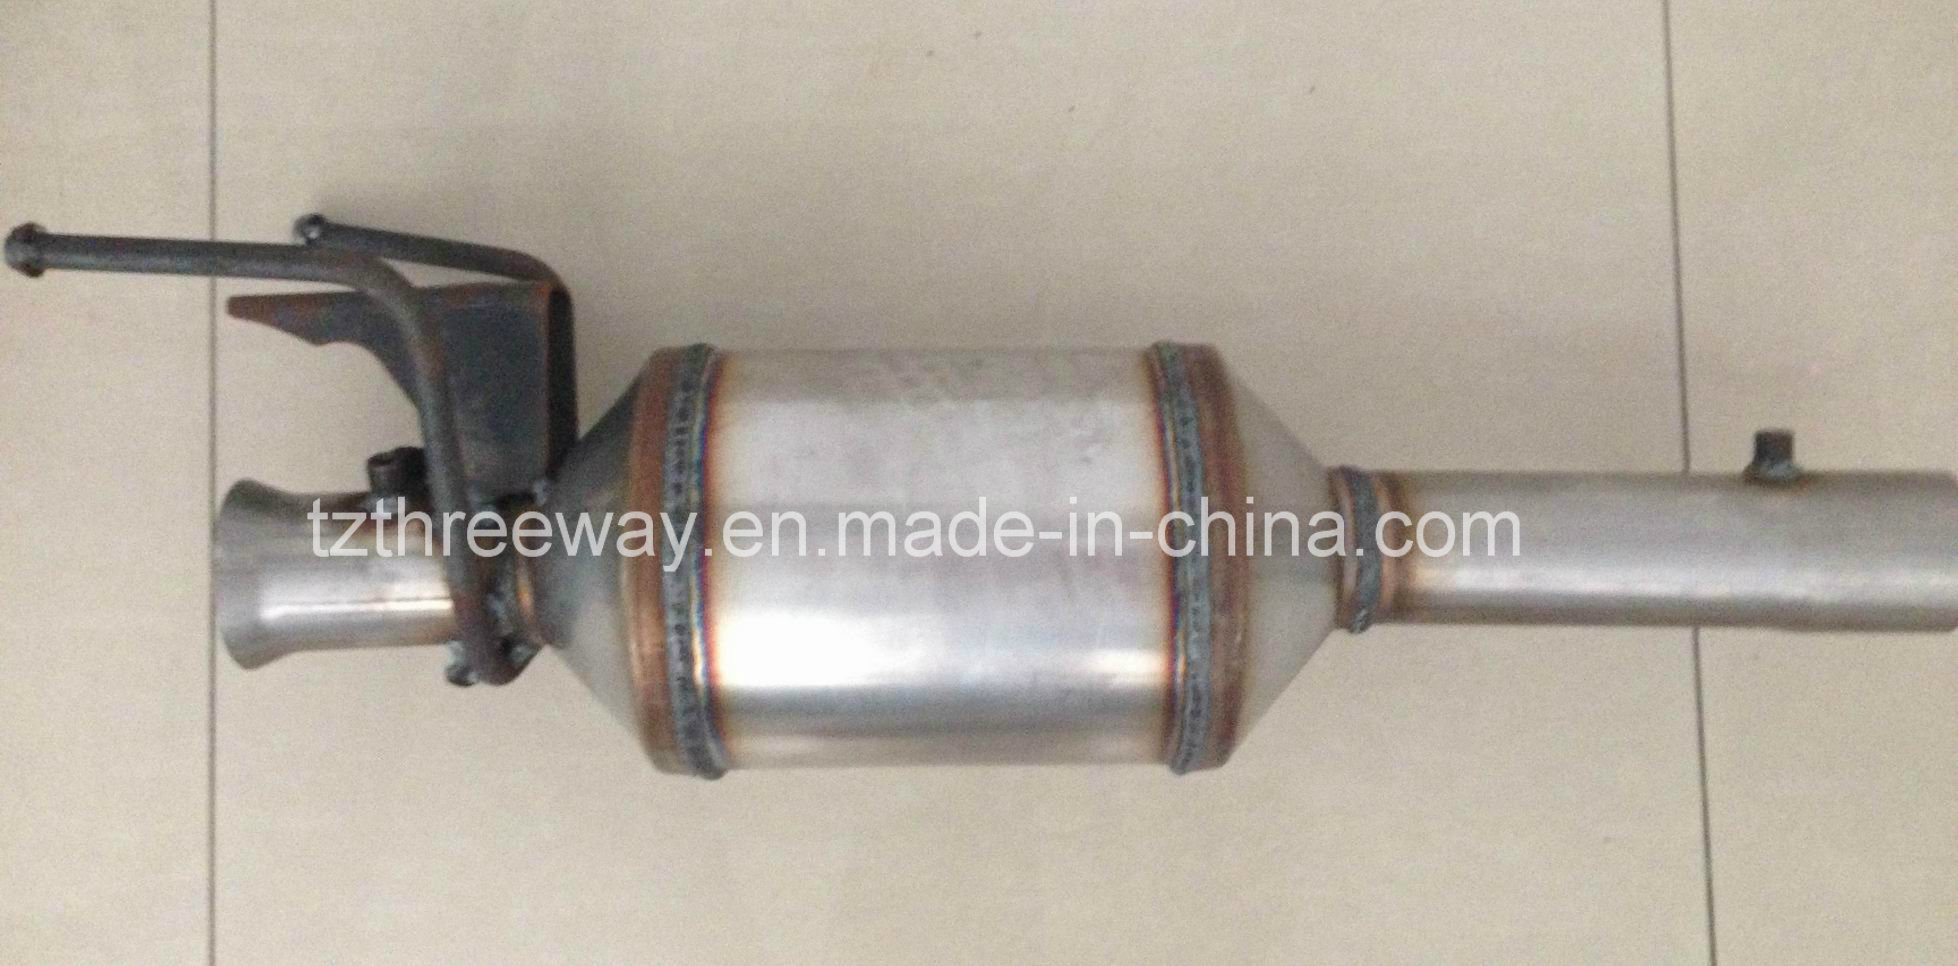 Diesel Particulate Filter (DPF) for Mercedes - Complete/Direct-Fit - Euro4 Emission Norms